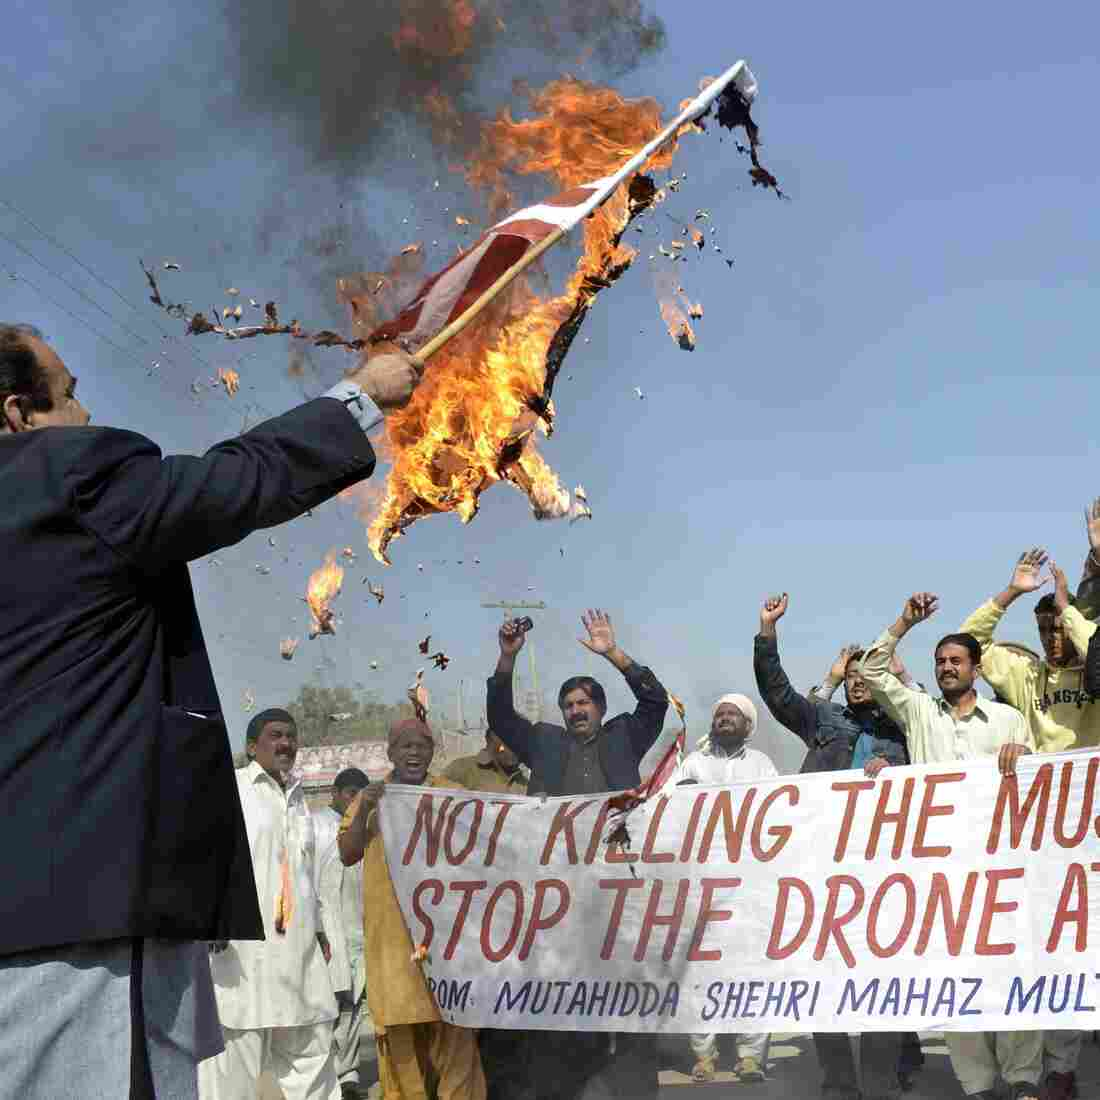 February: A protest in Multan, Pakistan, over the drone attacks.